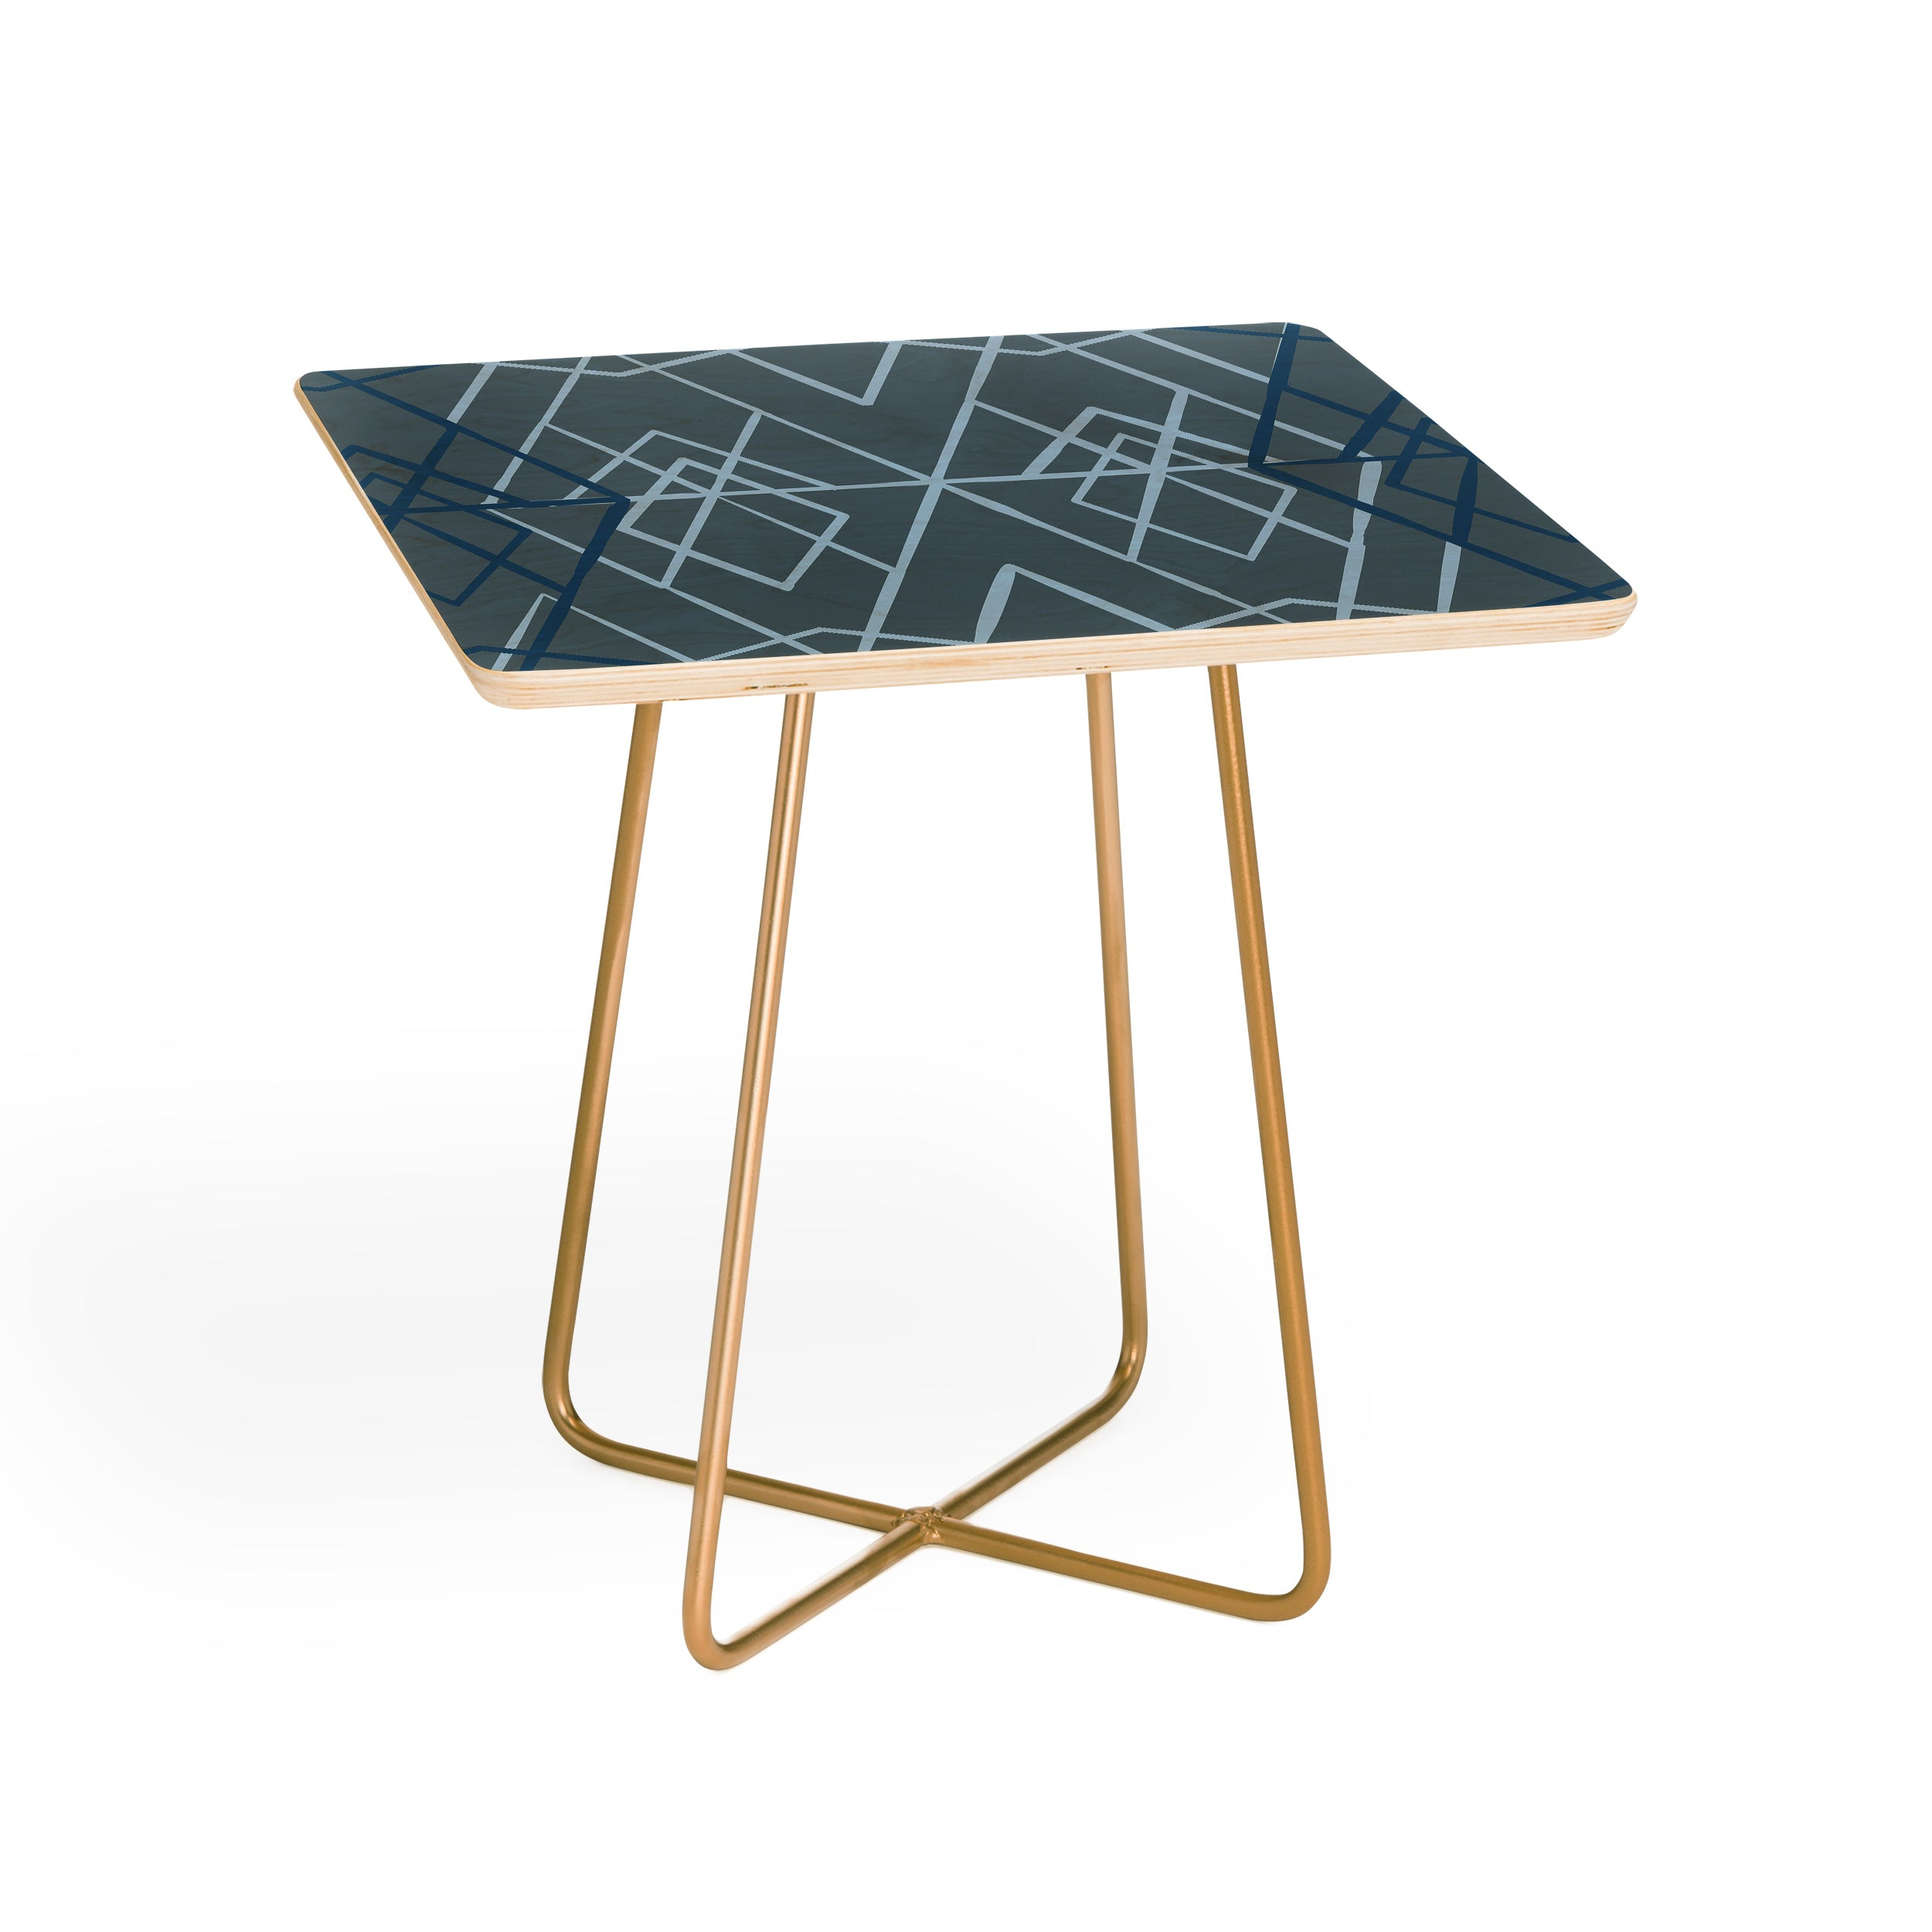 Mareike boehmer geometric sketches 1 side table deny designs geotapseo Gallery